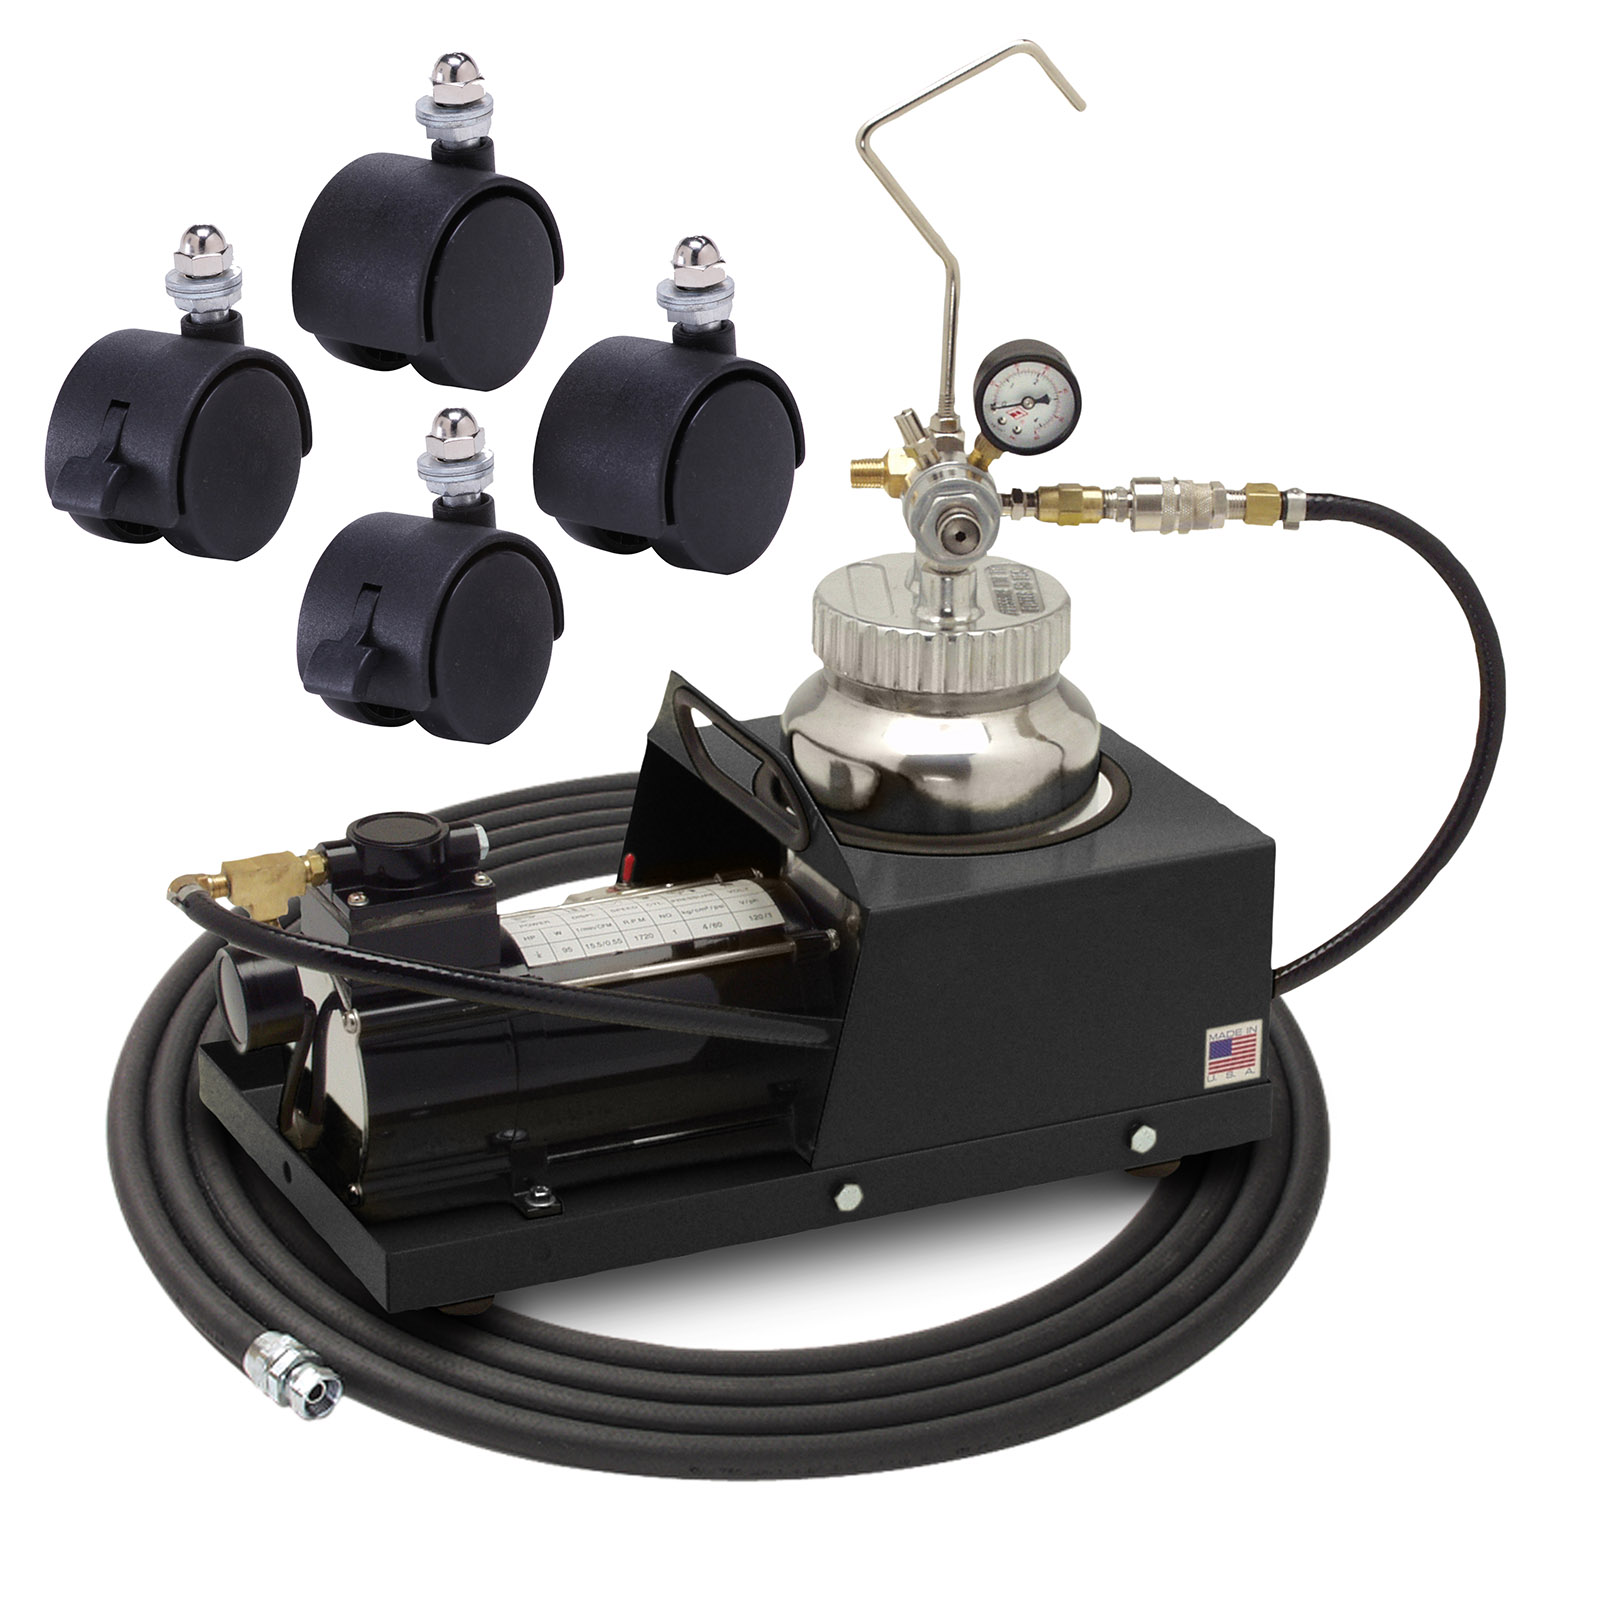 2 Quart Fluid Feed System